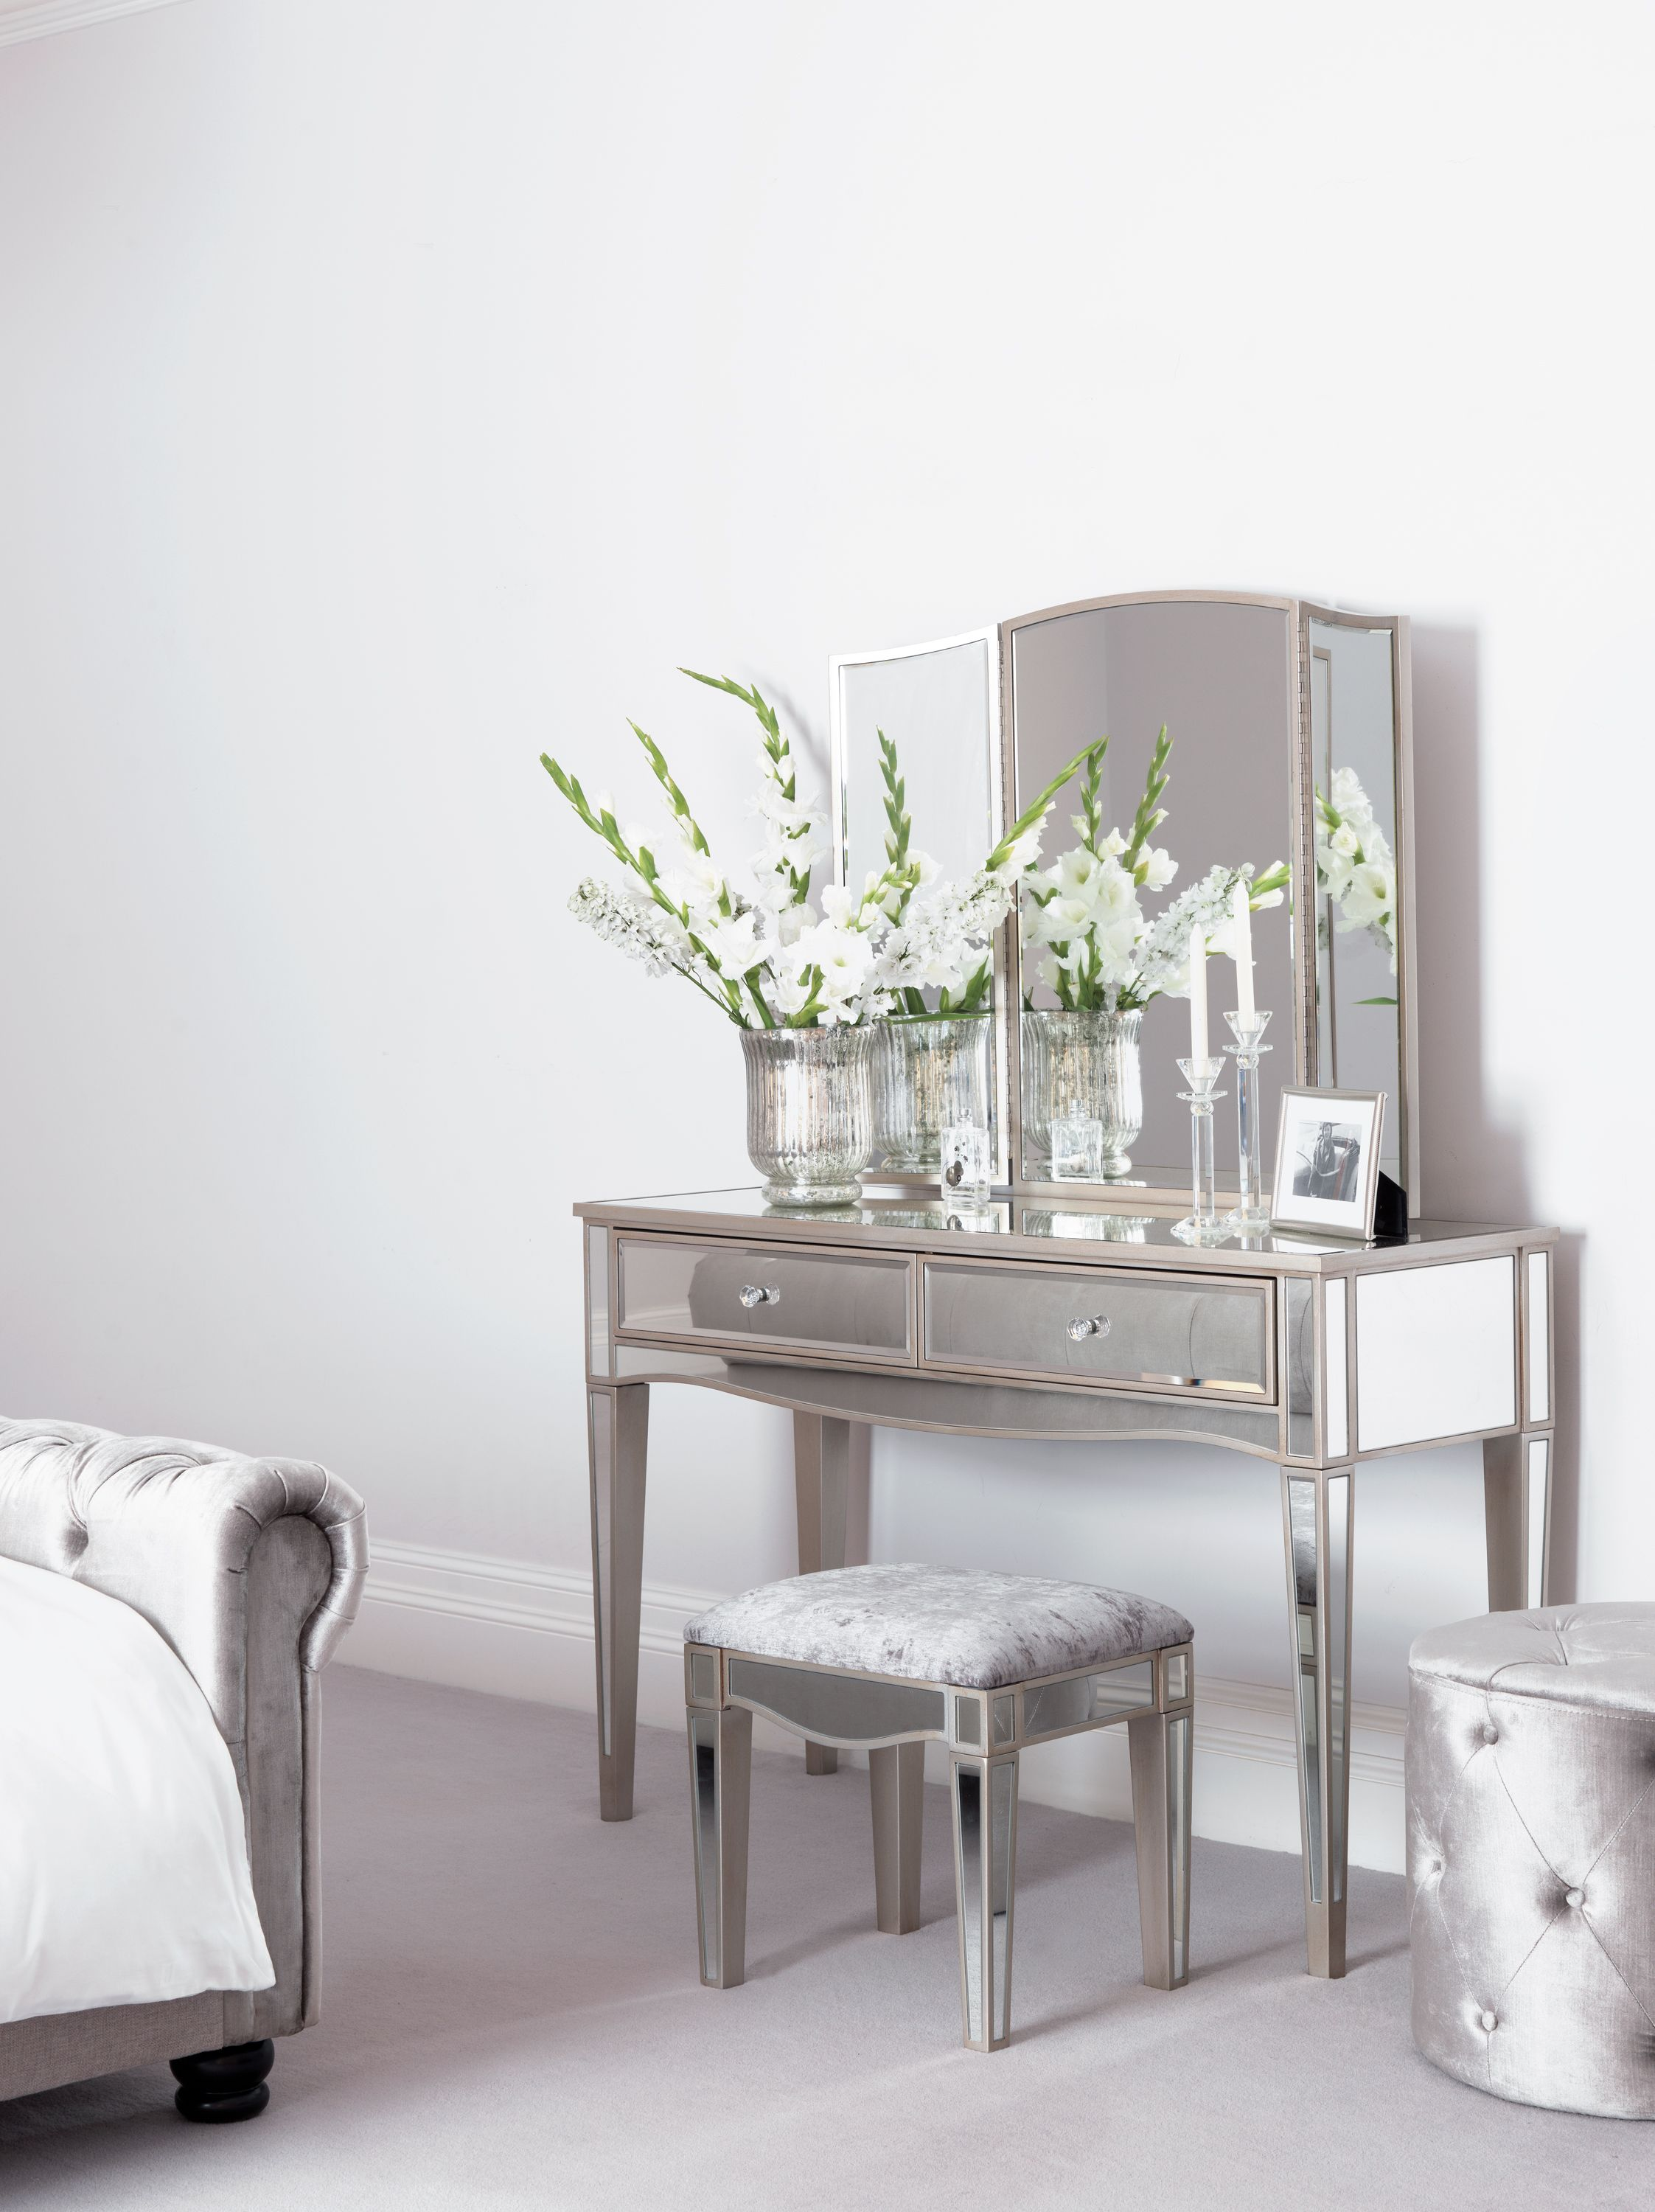 Every Bedroom Needs A Dresser This Elegant Dressing Table Provides The Perfect Feature For Your